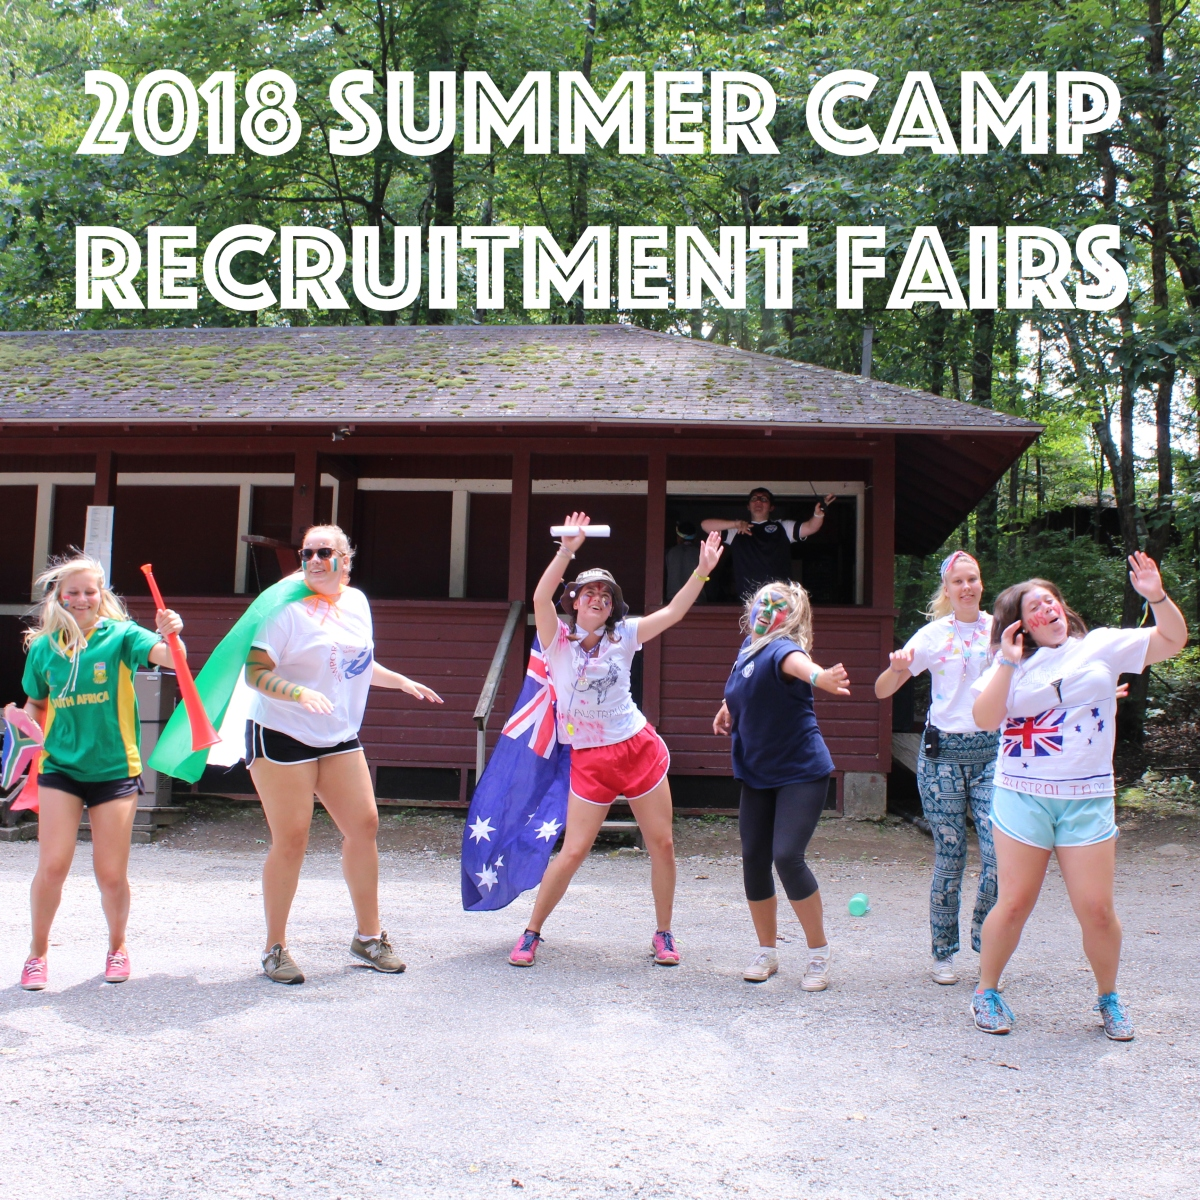 2018 Summer Camp Recruitment Fairs